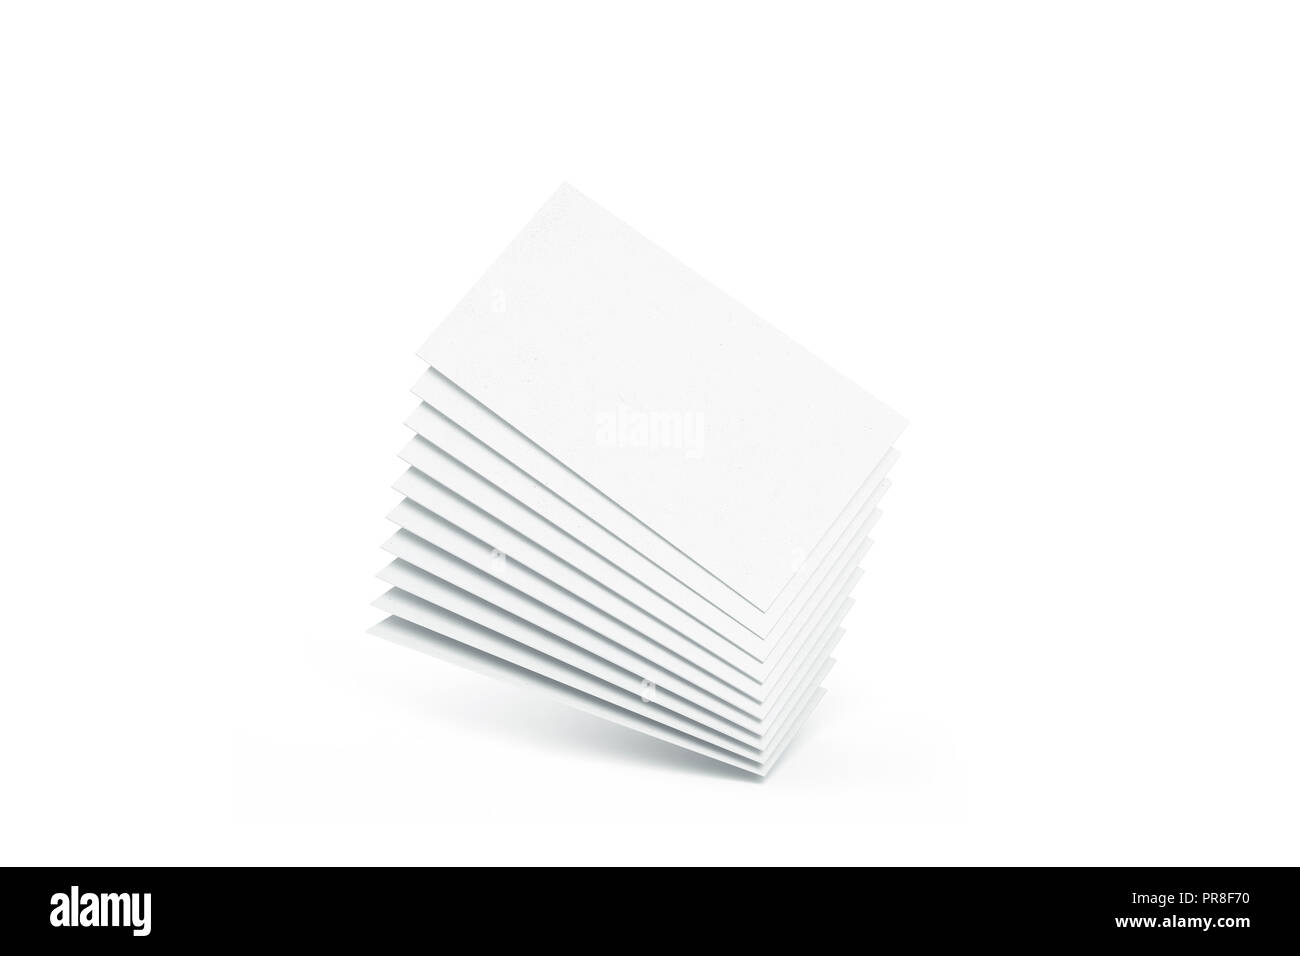 Blank white calling business cards heap mockup, 3d rendering. Empty namecard stack mock up. Clear contact papers pile template. Visiting papersheet for company name, phone number, email address. - Stock Image